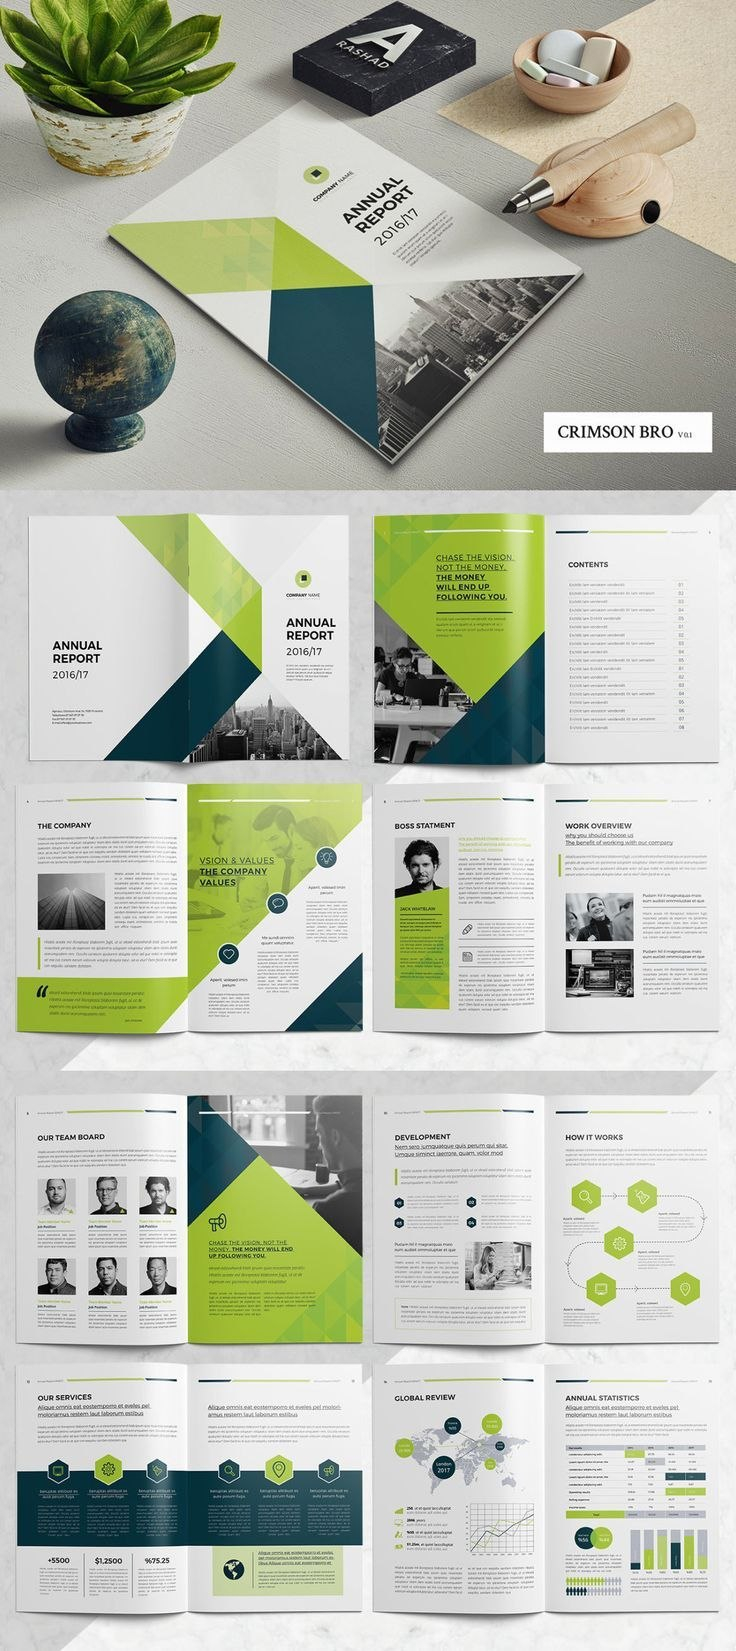 Photo Realistic Corporate Brochure Template Designs Afa pertaining to Architecture Brochure Templates Free Download - 10+ Professional Templates Ideas